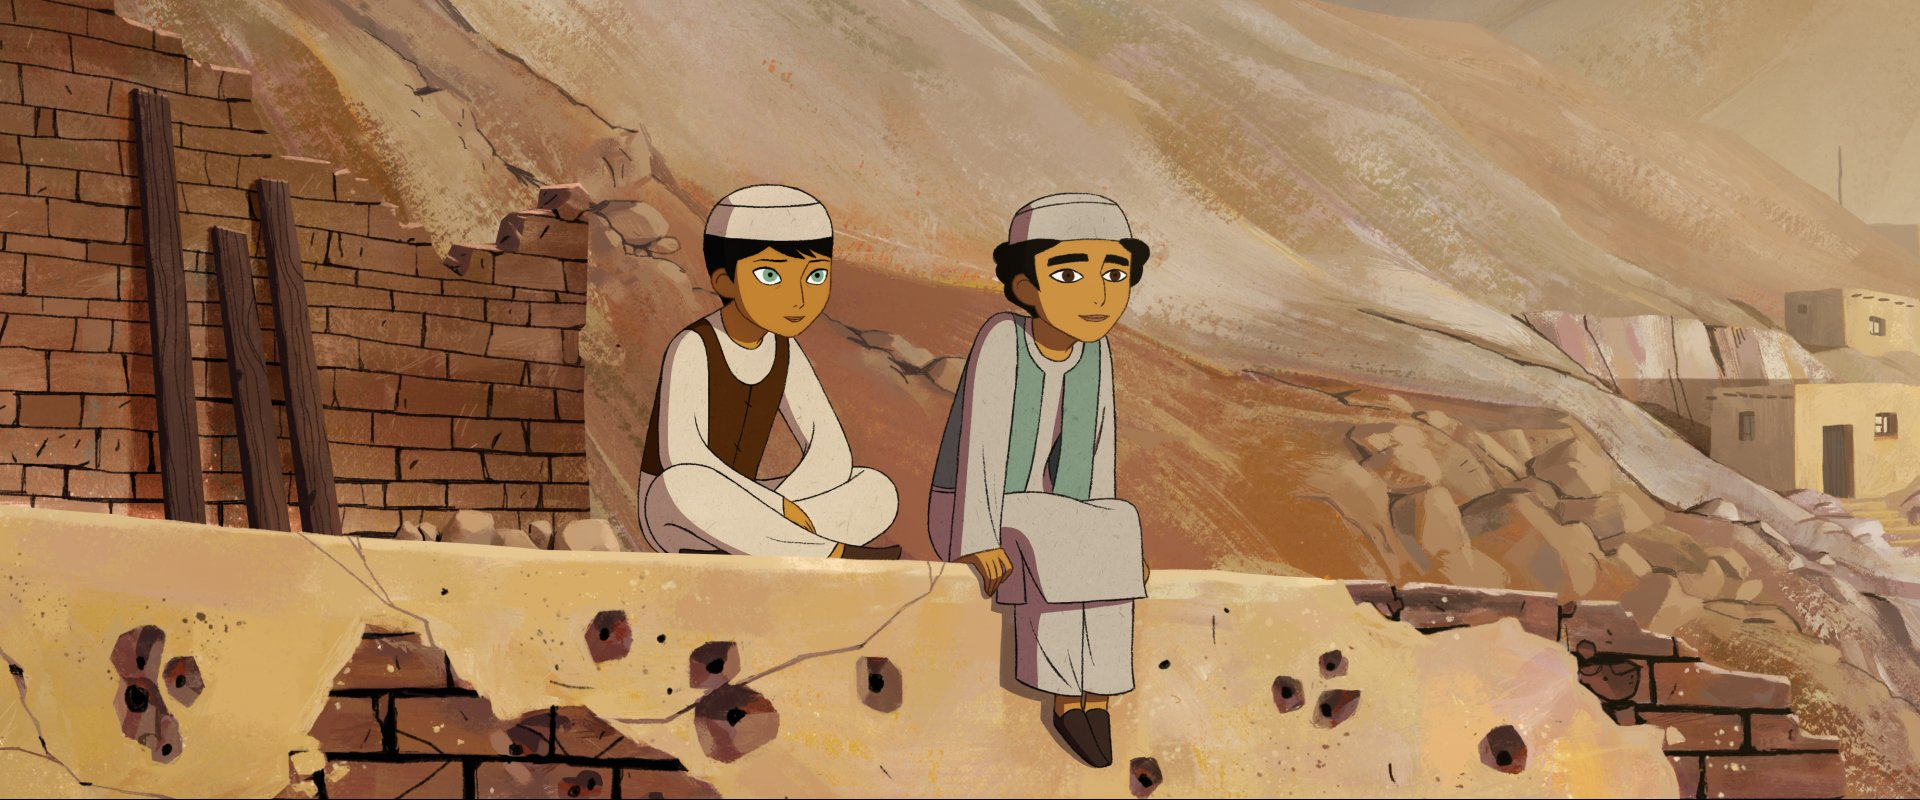 Animated boys sitting on wall